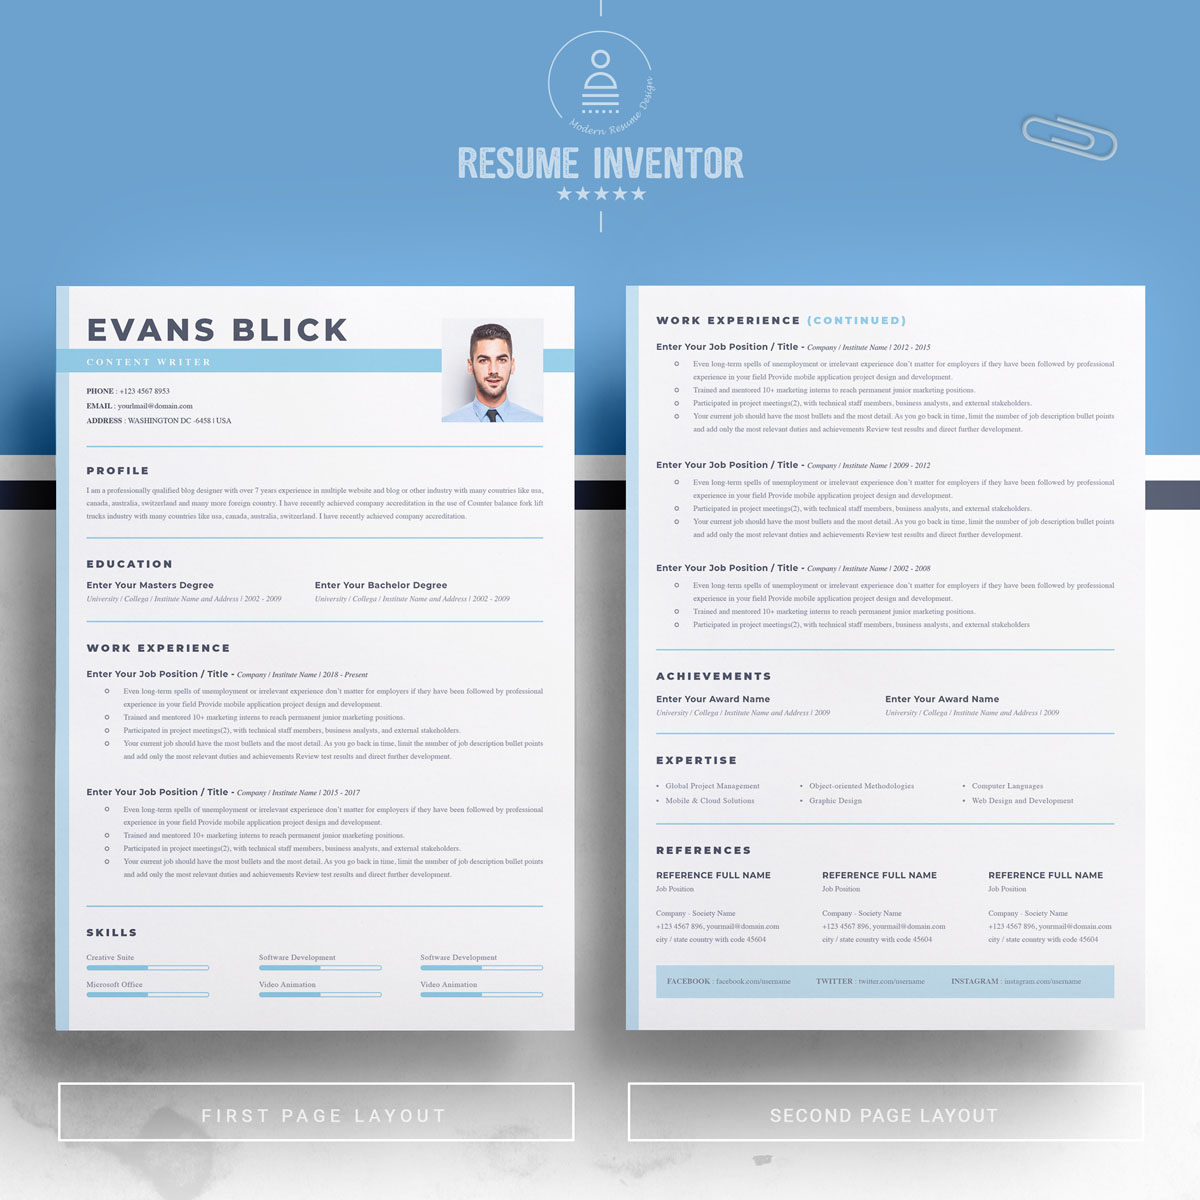 https://s3u.tmimgcdn.com/1860567-1551108623289_02_2-Pages-Free-Resume-Design-Template.jpg